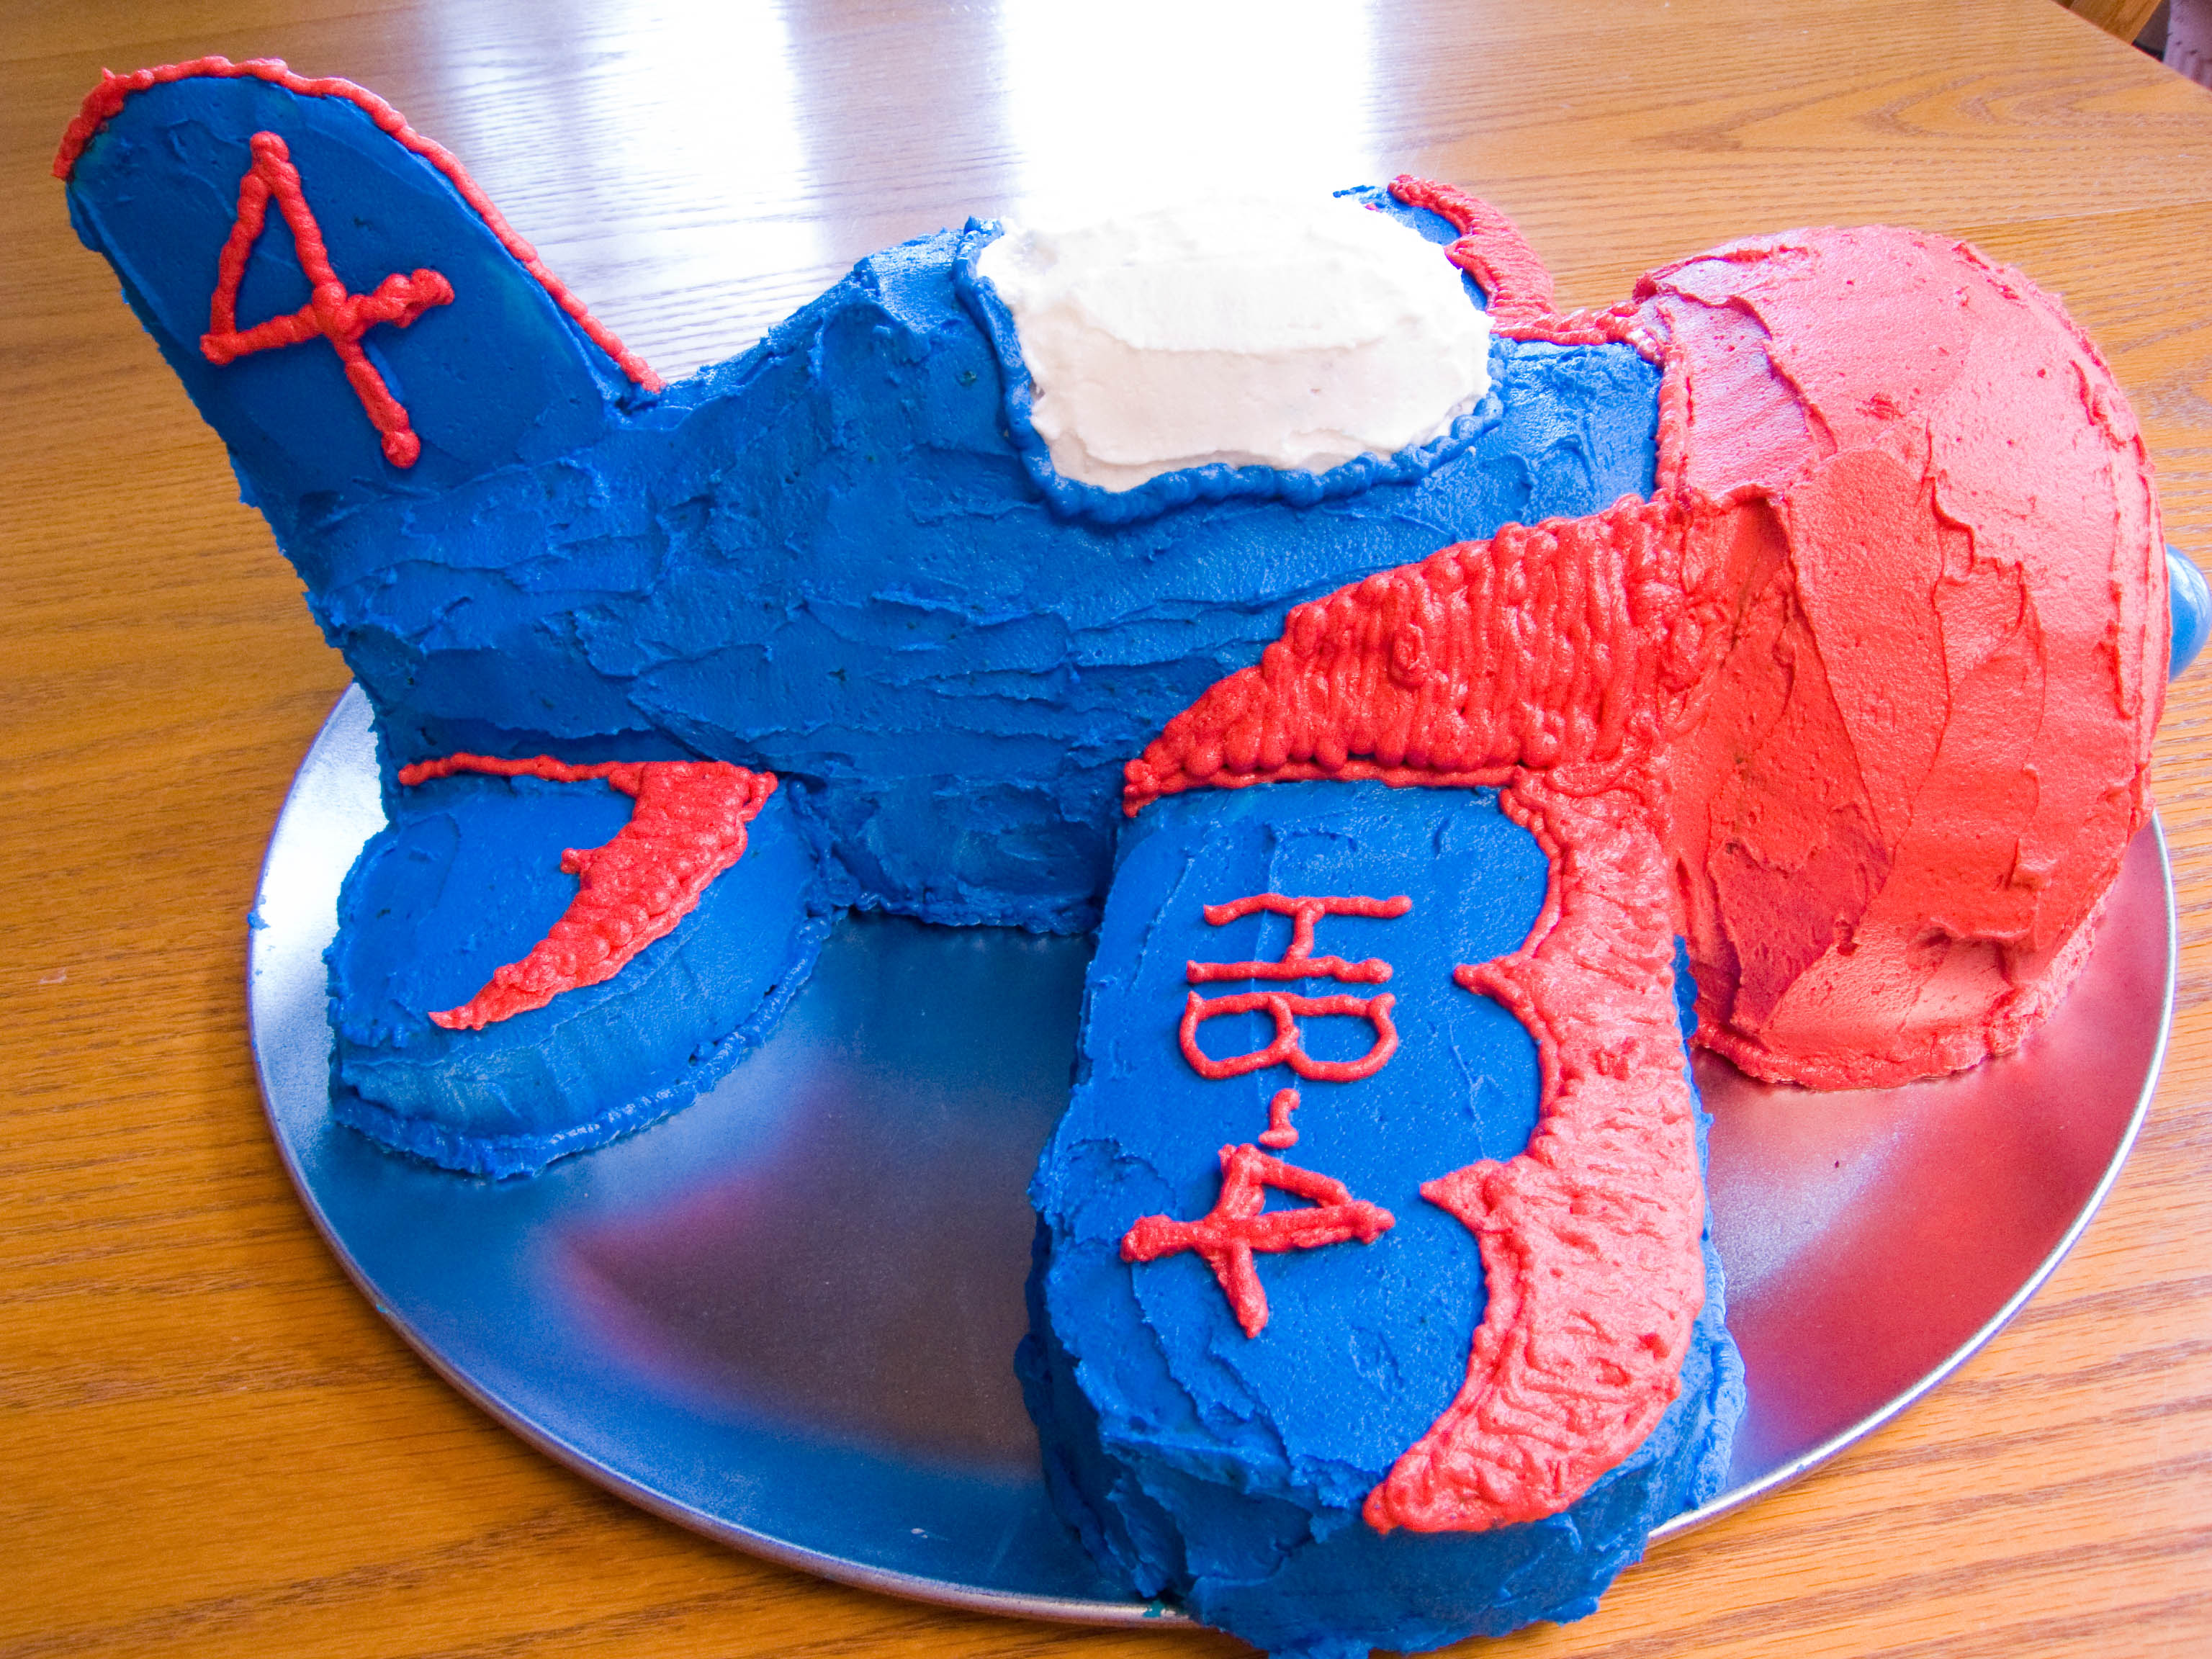 Airplane Birthday Cake, by Andrea Meyers